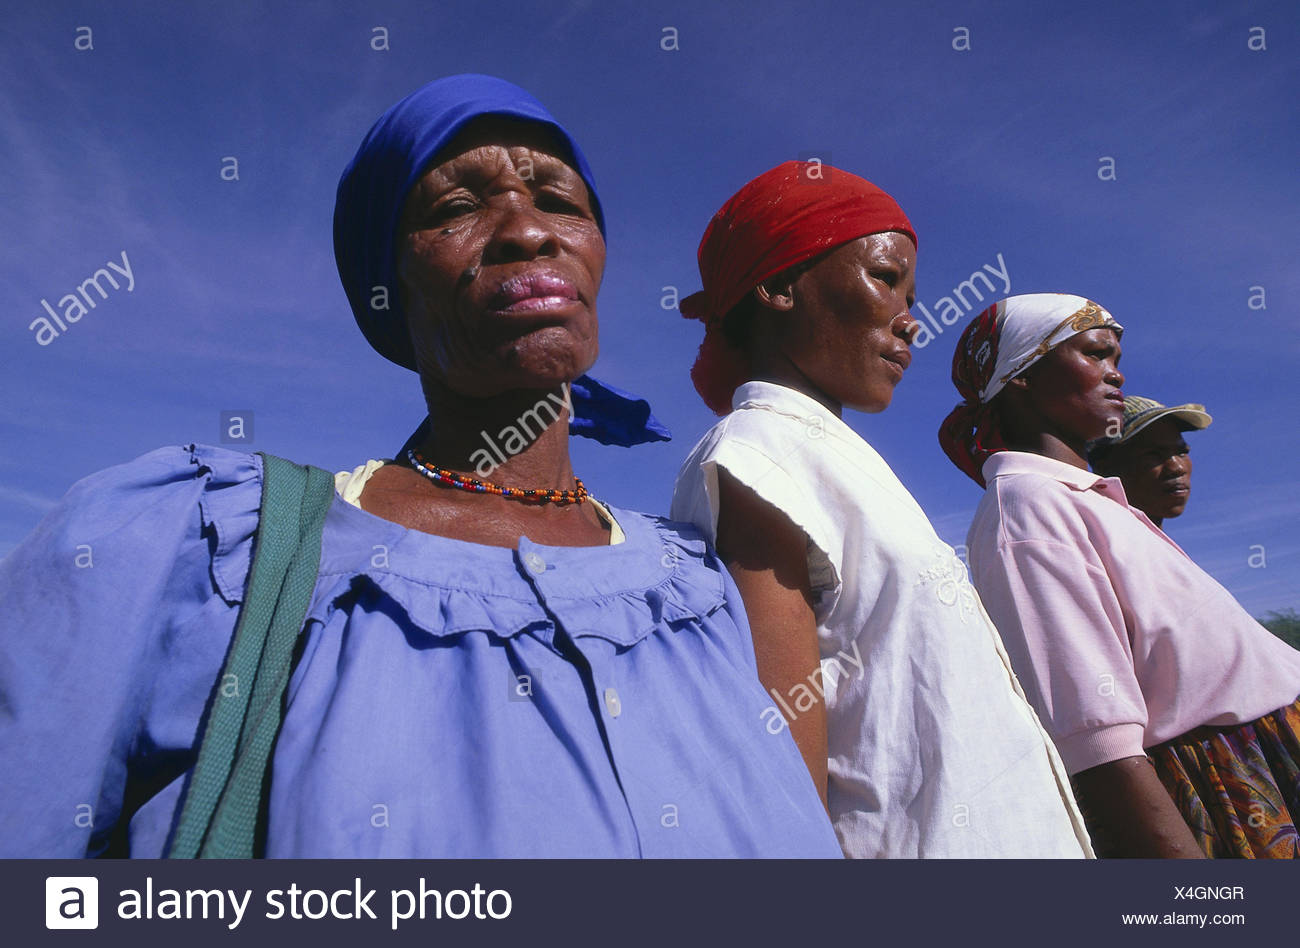 Botswana, women, portraits, clothes, brightly, clothes, headscarfs, headgear, locals, heavens, cloudless, blue, people, - Stock Image